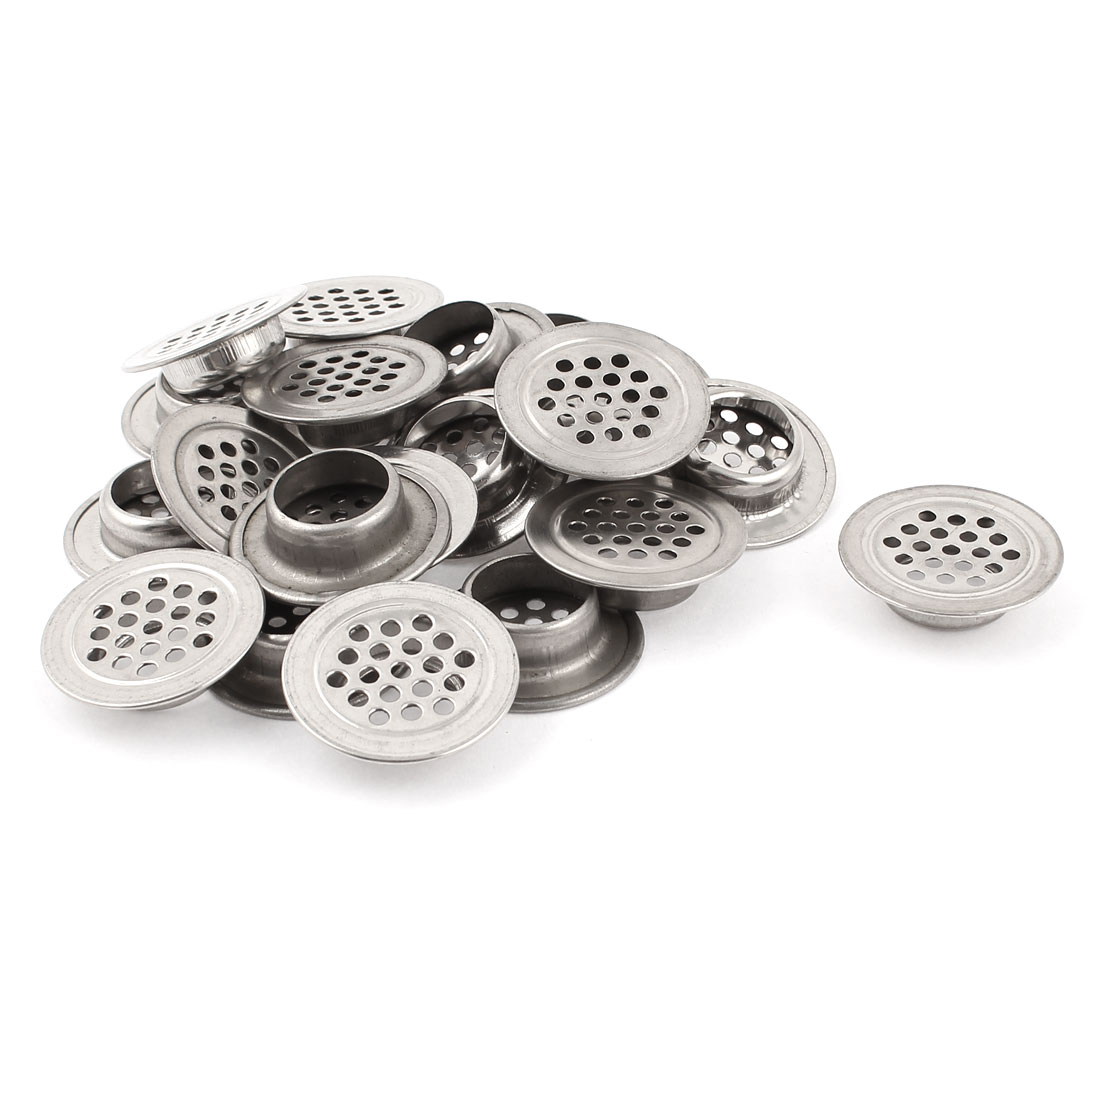 "Home Silver Tone Stainless Steel Round Air Vent Louver 1.2"" Dia 20pcs"